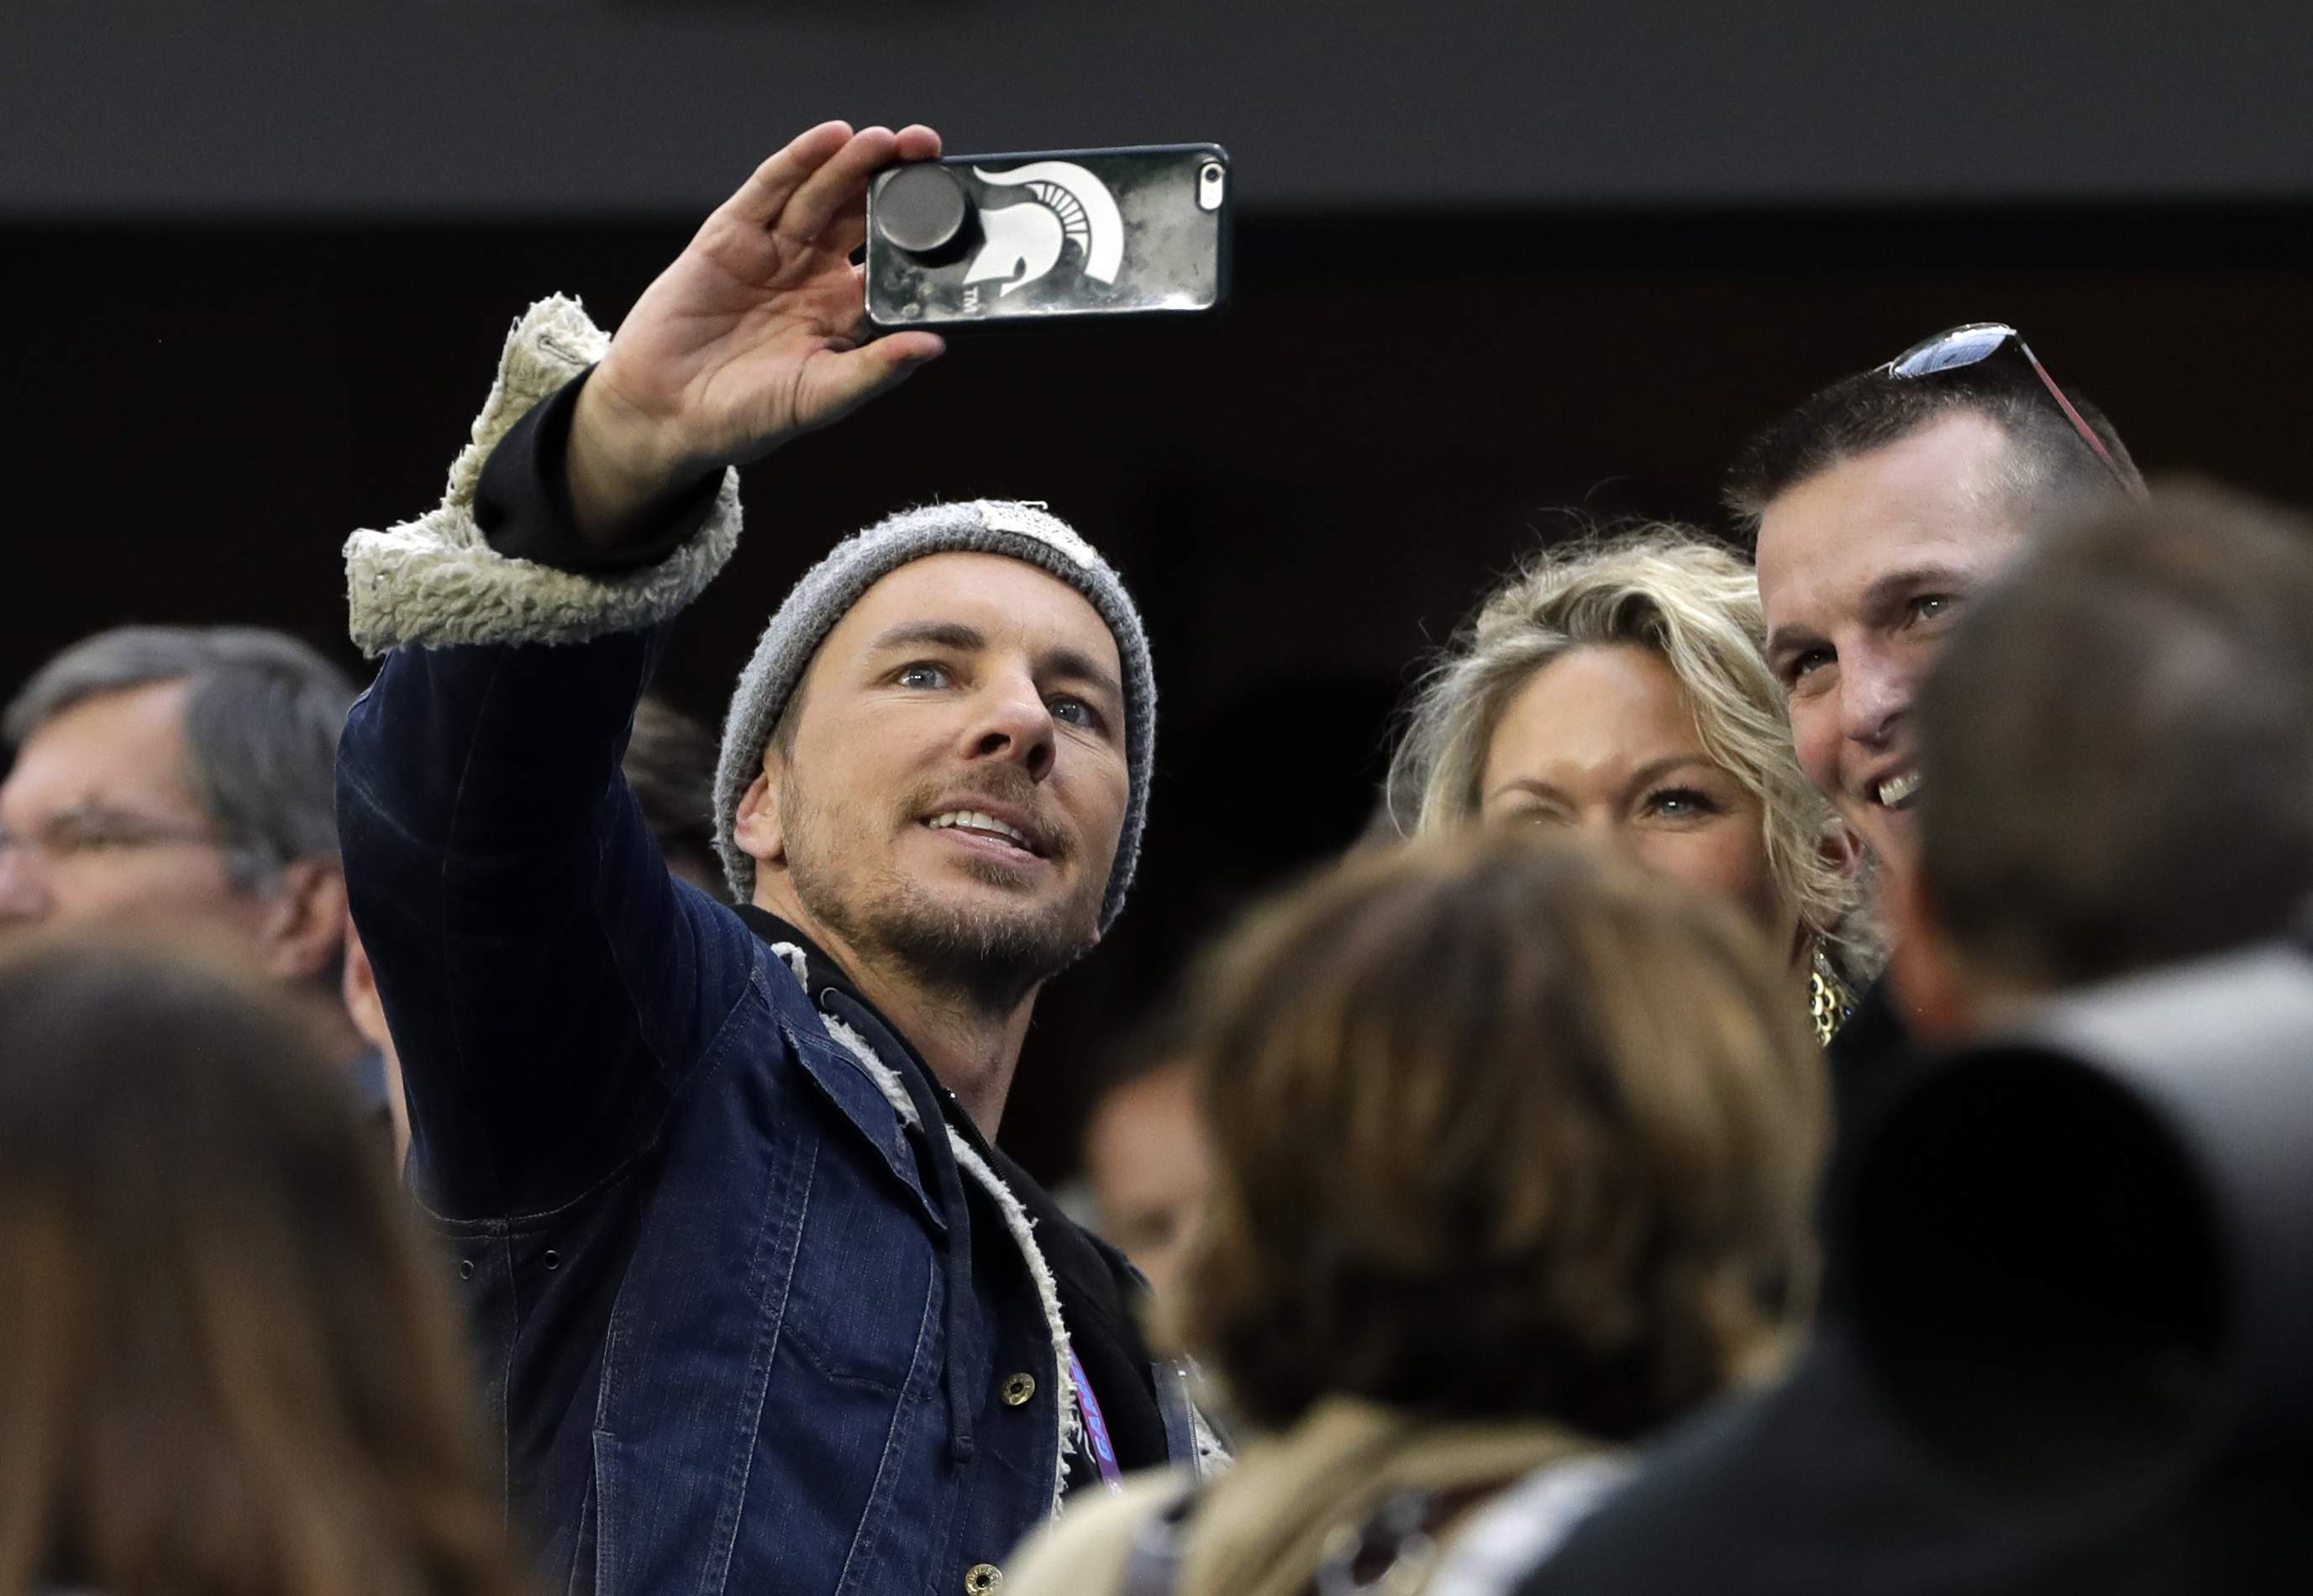 Actor Dax Shepard, left, takes selfie on the sideline, before the NFL Super Bowl 52 football game between the Philadelphia Eagles and the New England Patriots Sunday, Feb. 4, 2018, in Minneapolis. (AP Photo/Chris O'Meara)